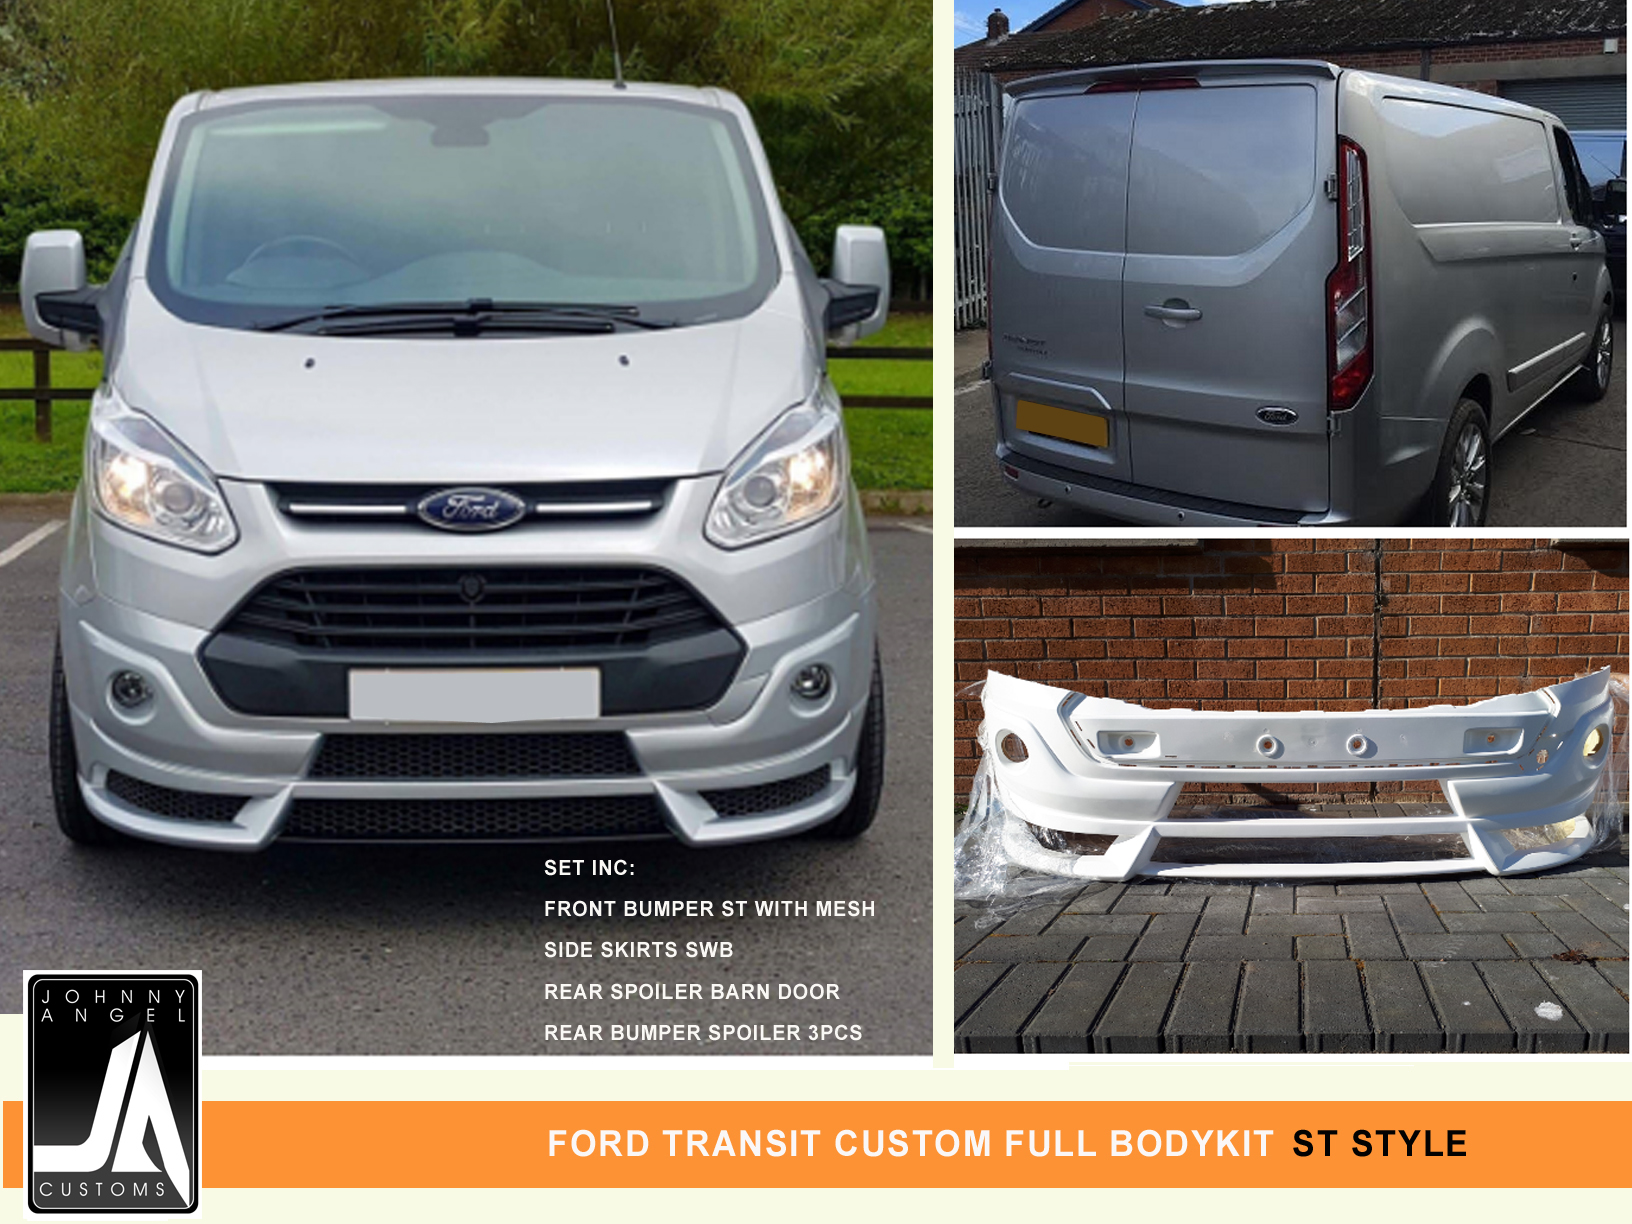 FORD TRANSIT CUSTOM FULL BODYKIT  ST Style By Johnny Angel Customs Pic 1